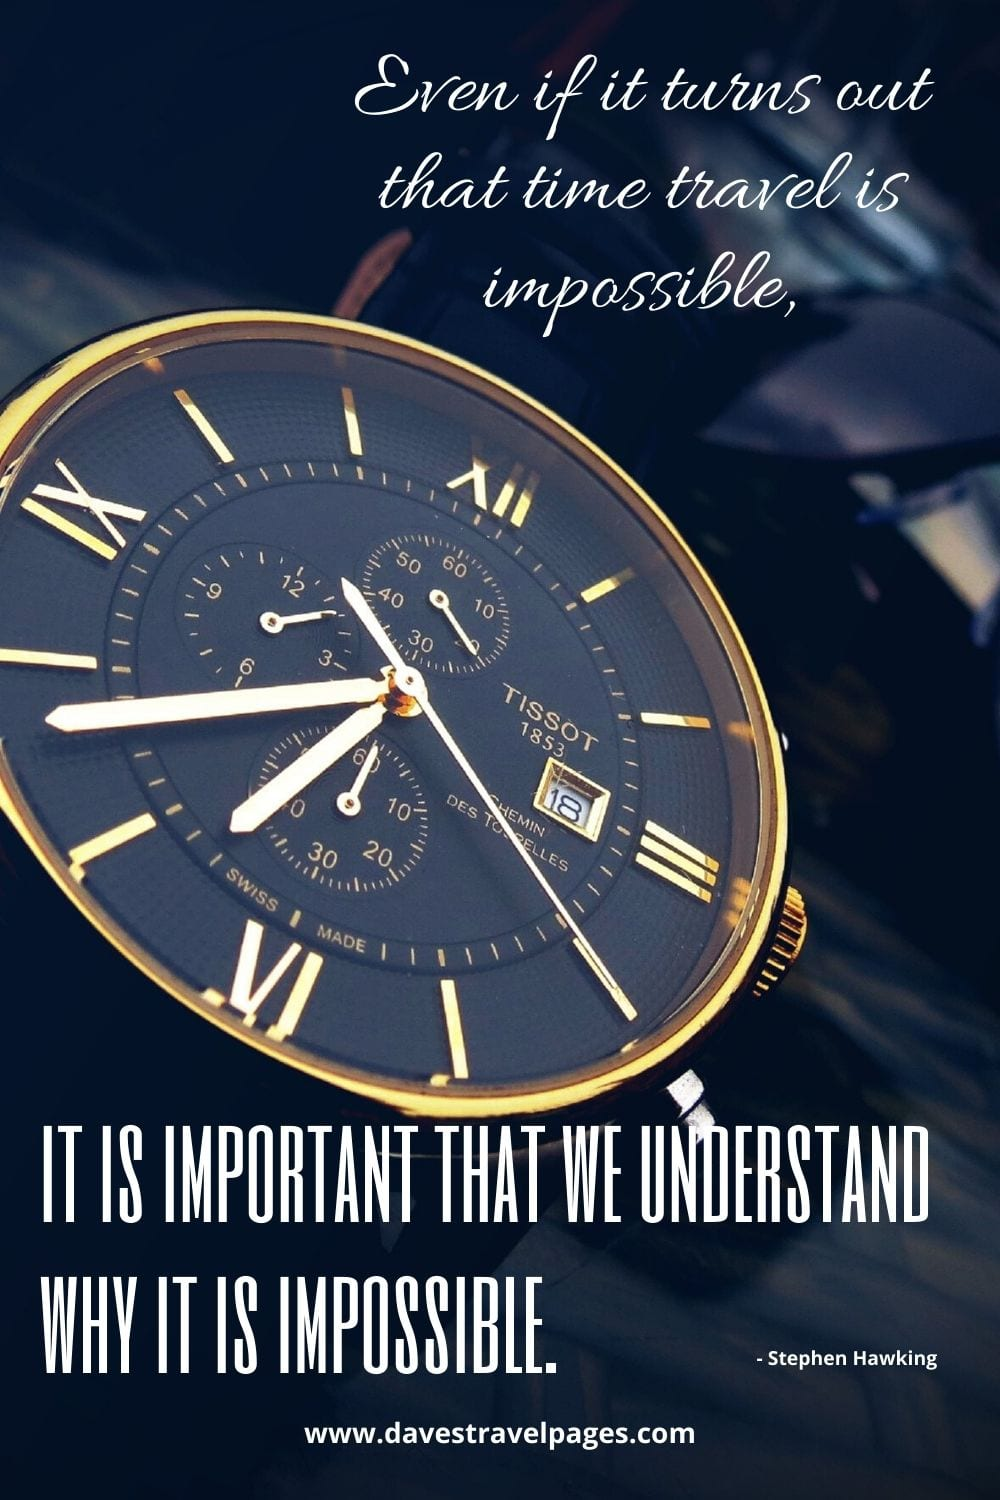 Time Travel Quotes - Even if it turns out that time travel is impossible, it is important that we understand why it is impossible. Stephen Hawking